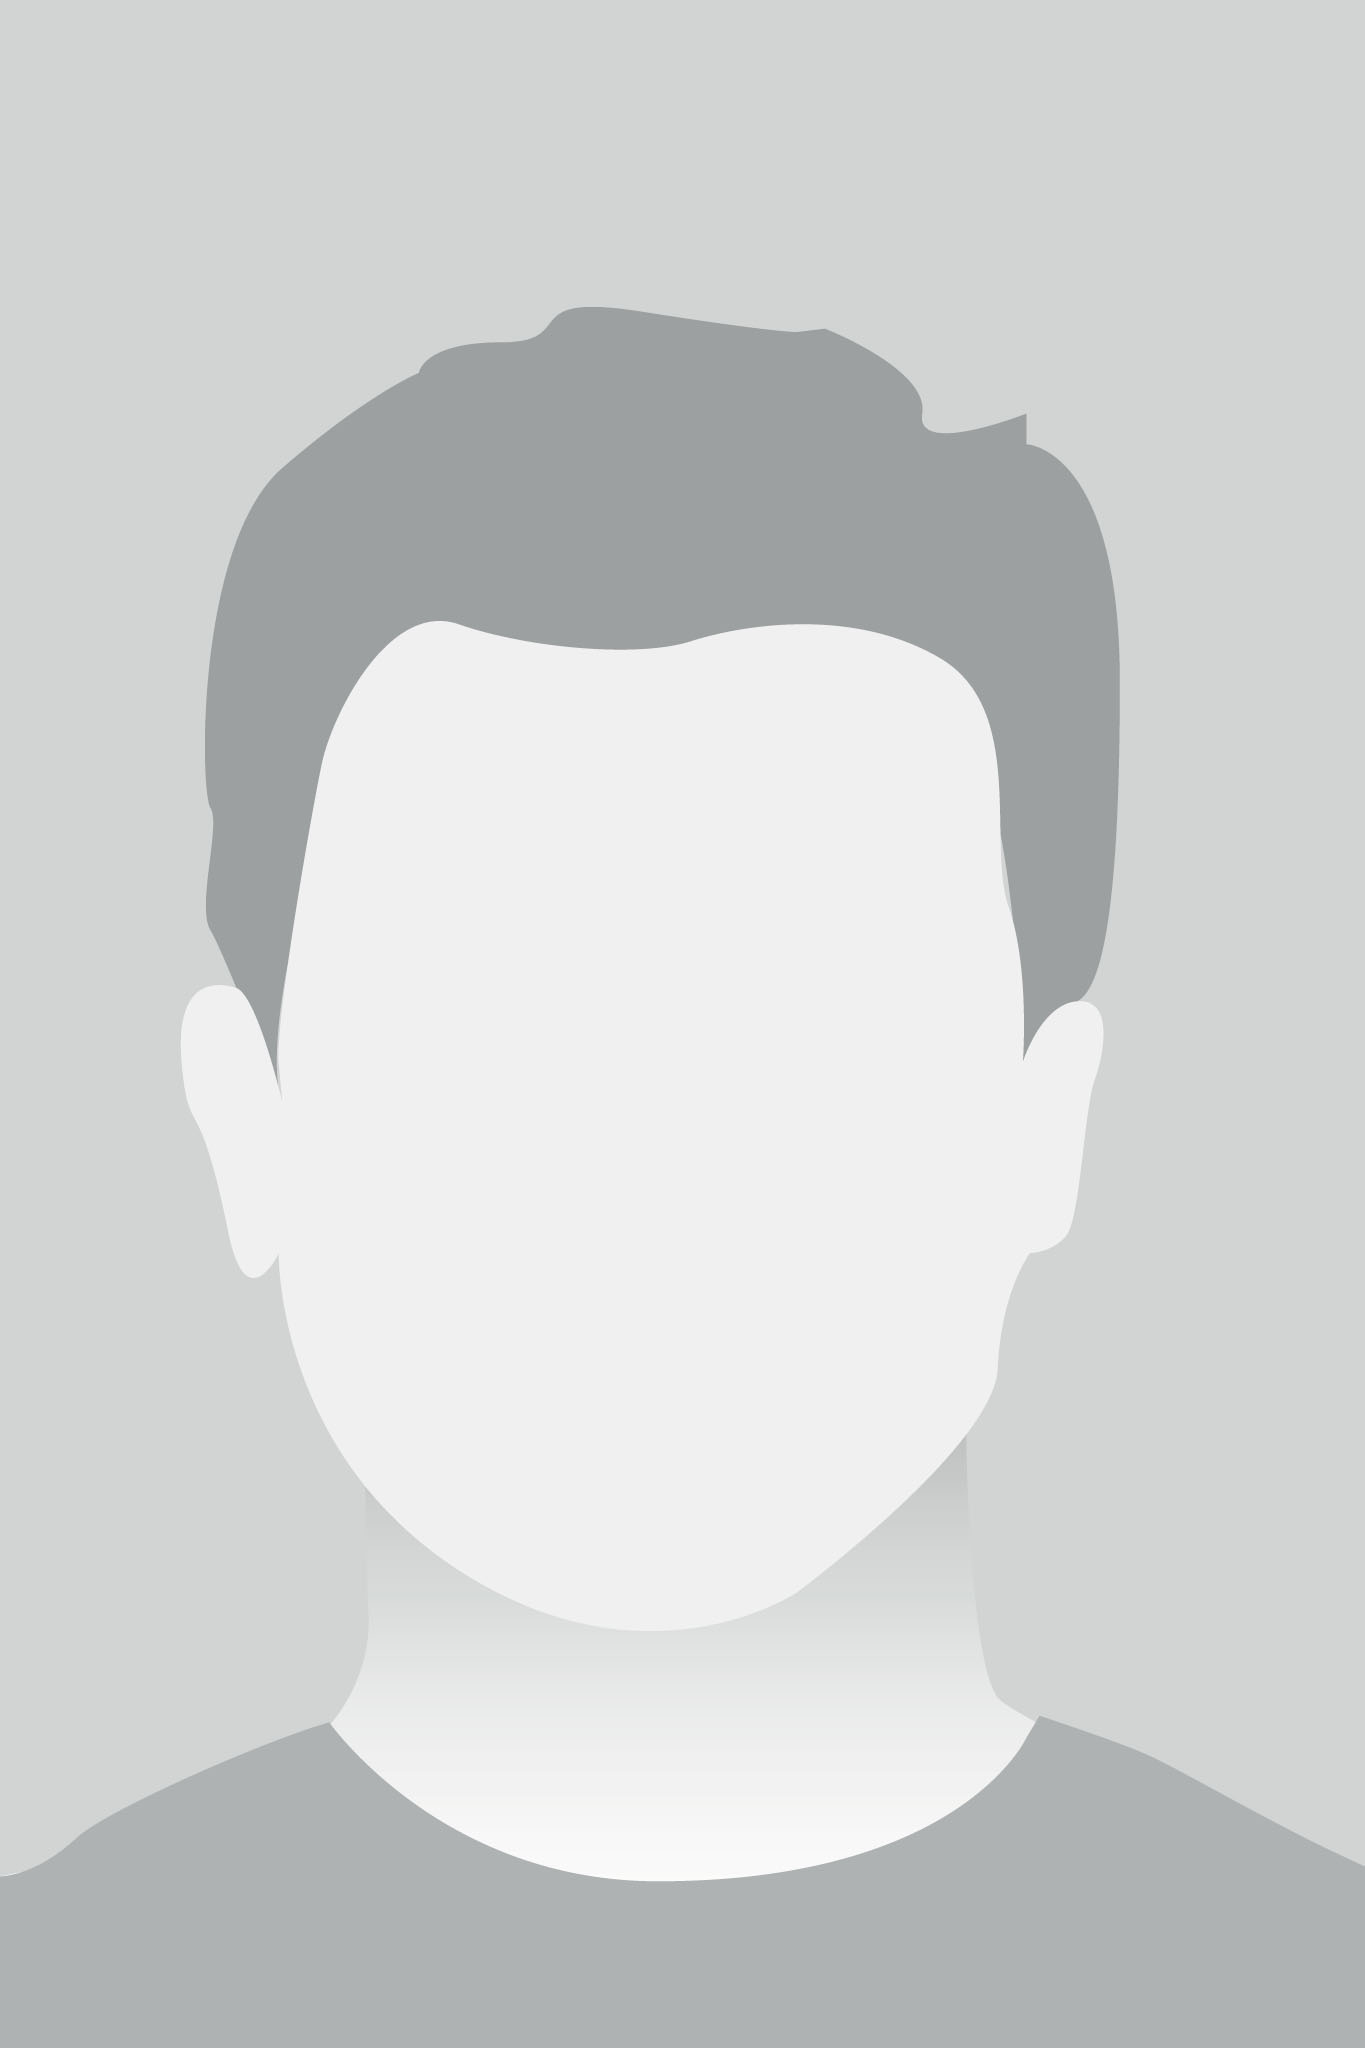 Default Placeholder Avatar Profile on Gray Background for a male